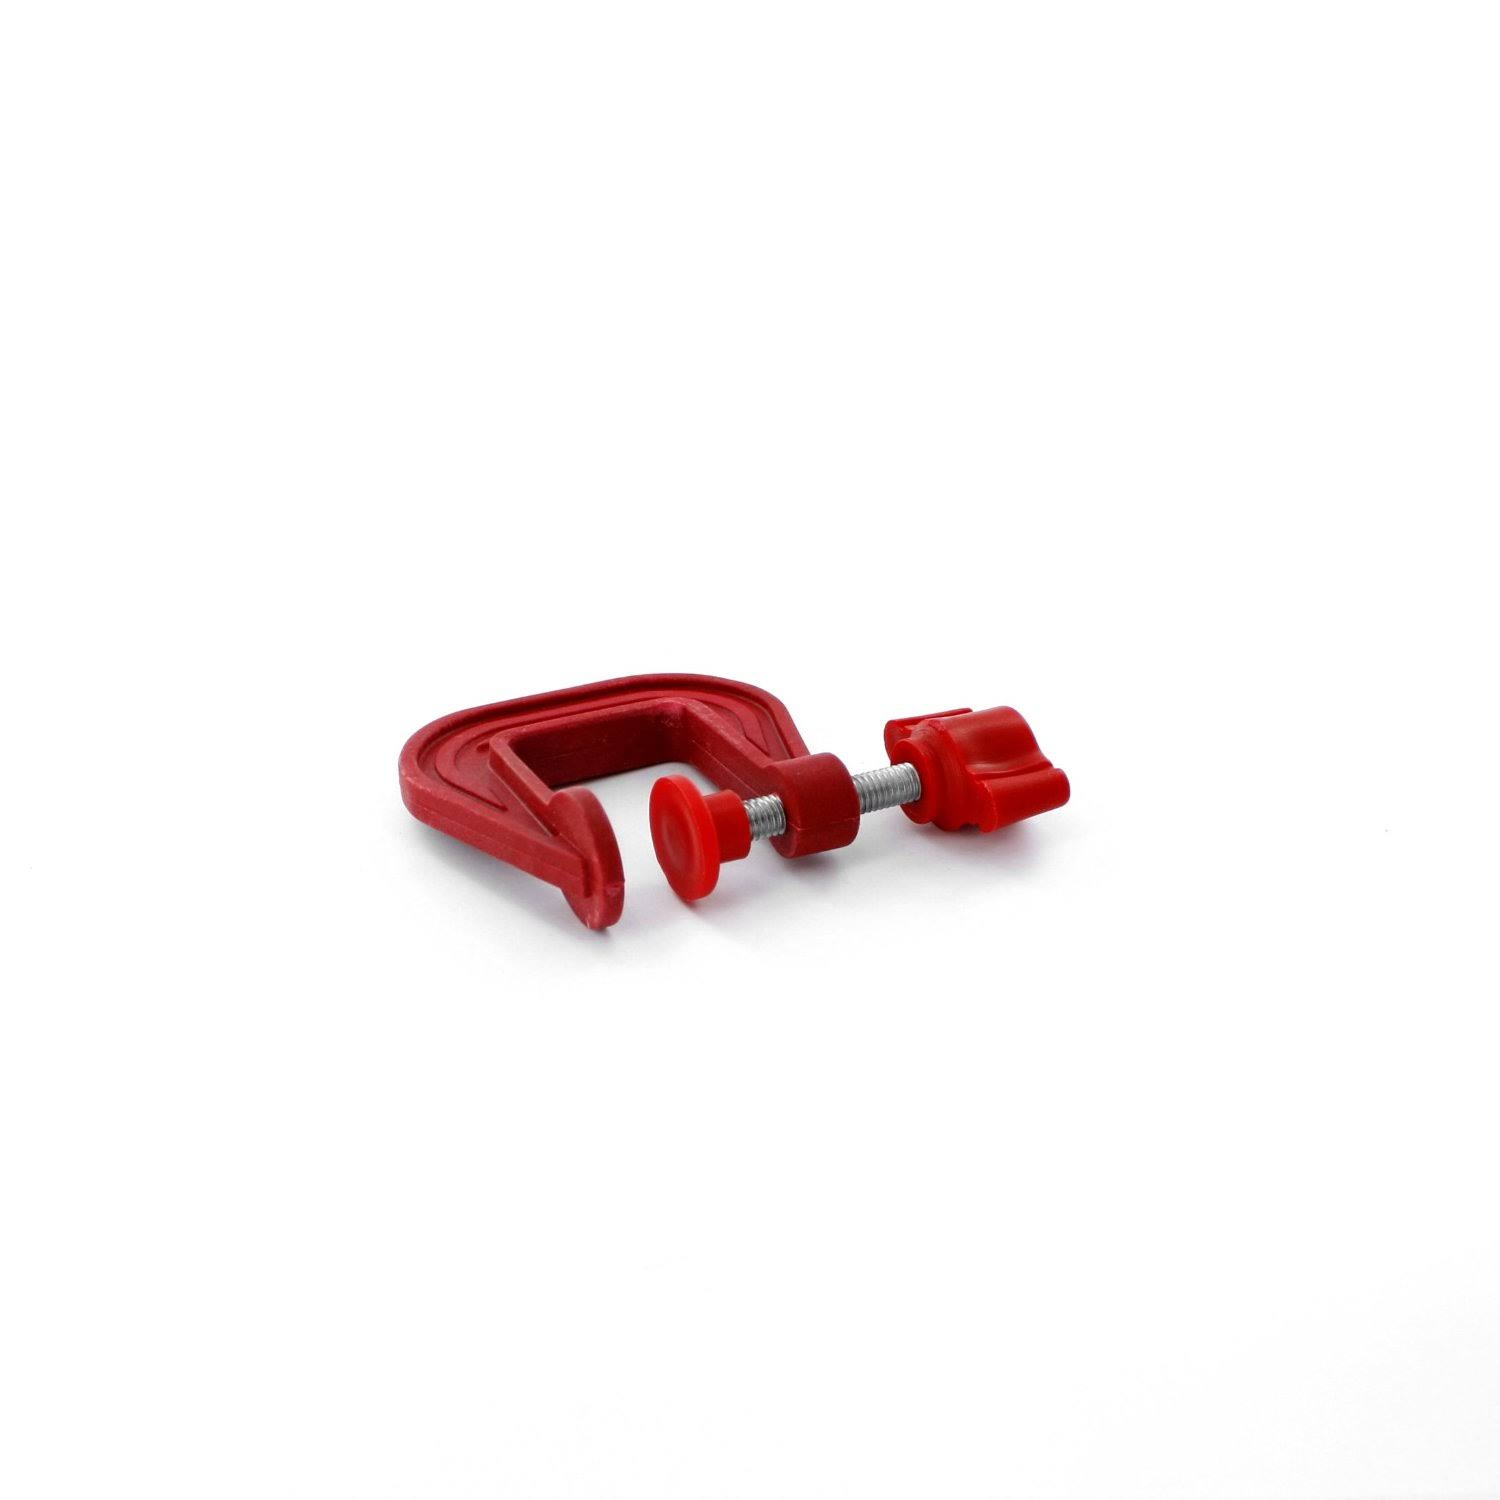 Modelcraft 25mm Plastic G Clamp